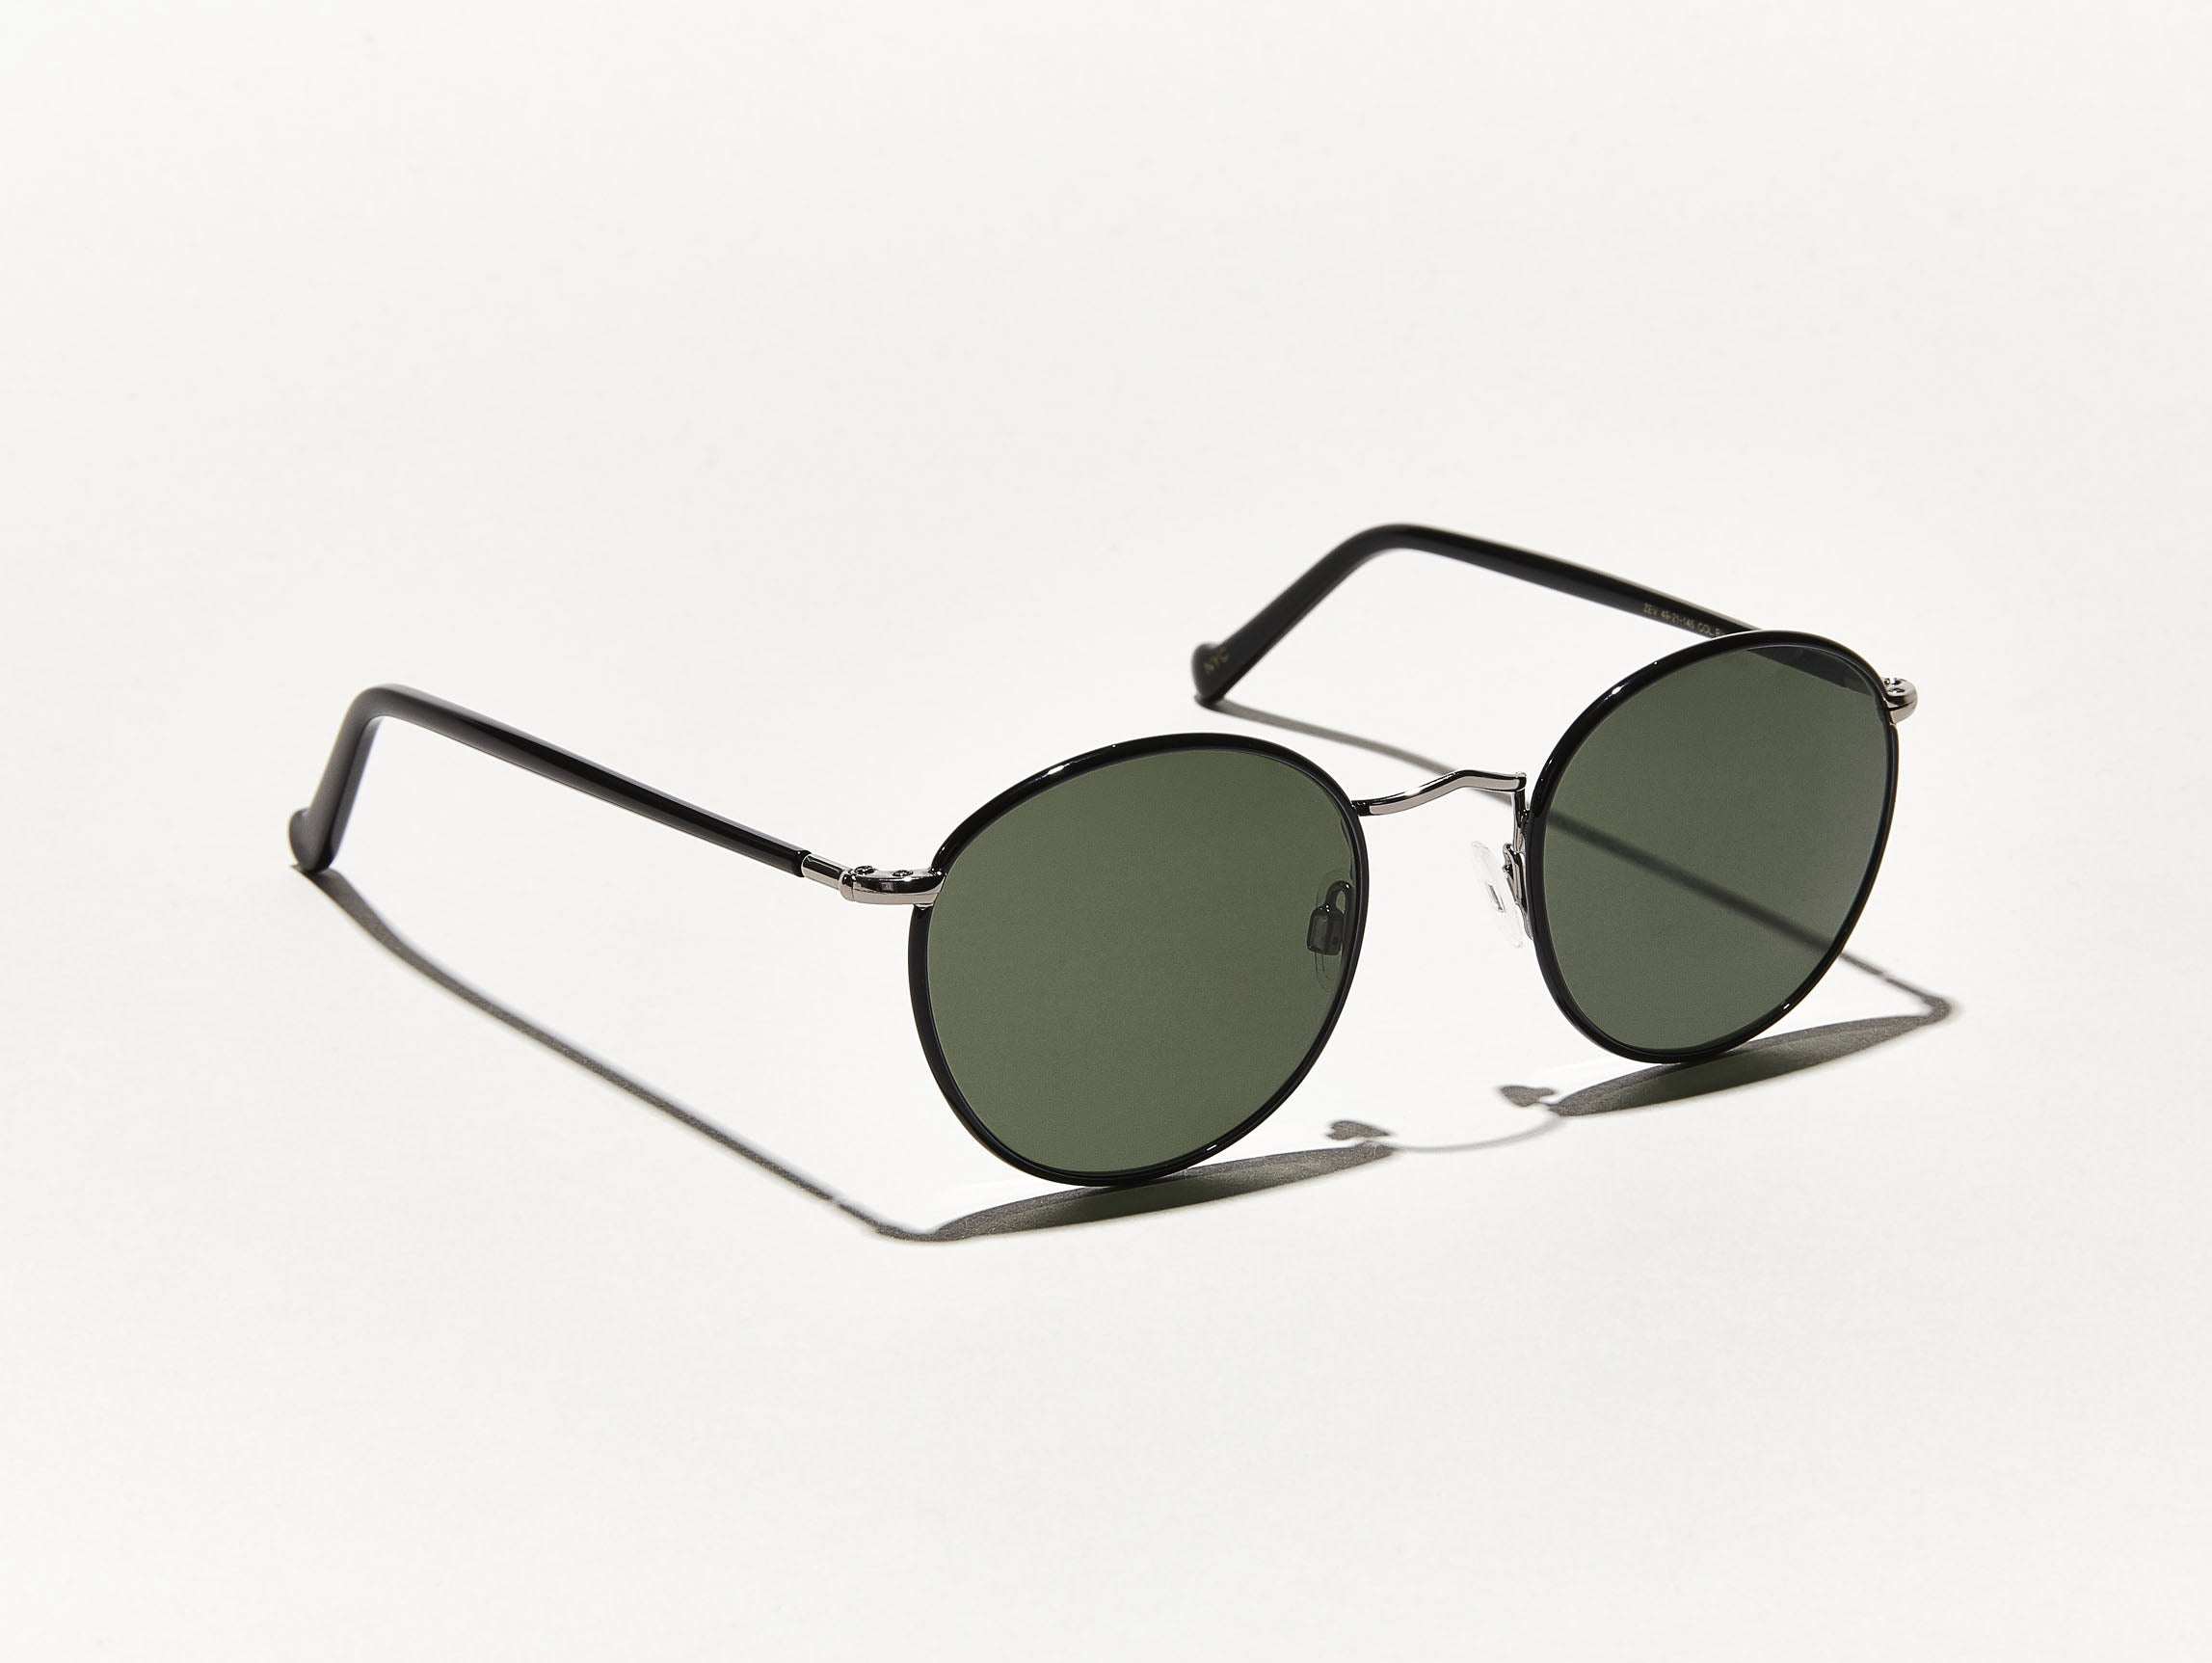 256cfab257cf2 https   moscot.com  daily https   moscot.com products frankie 2019-05 ...